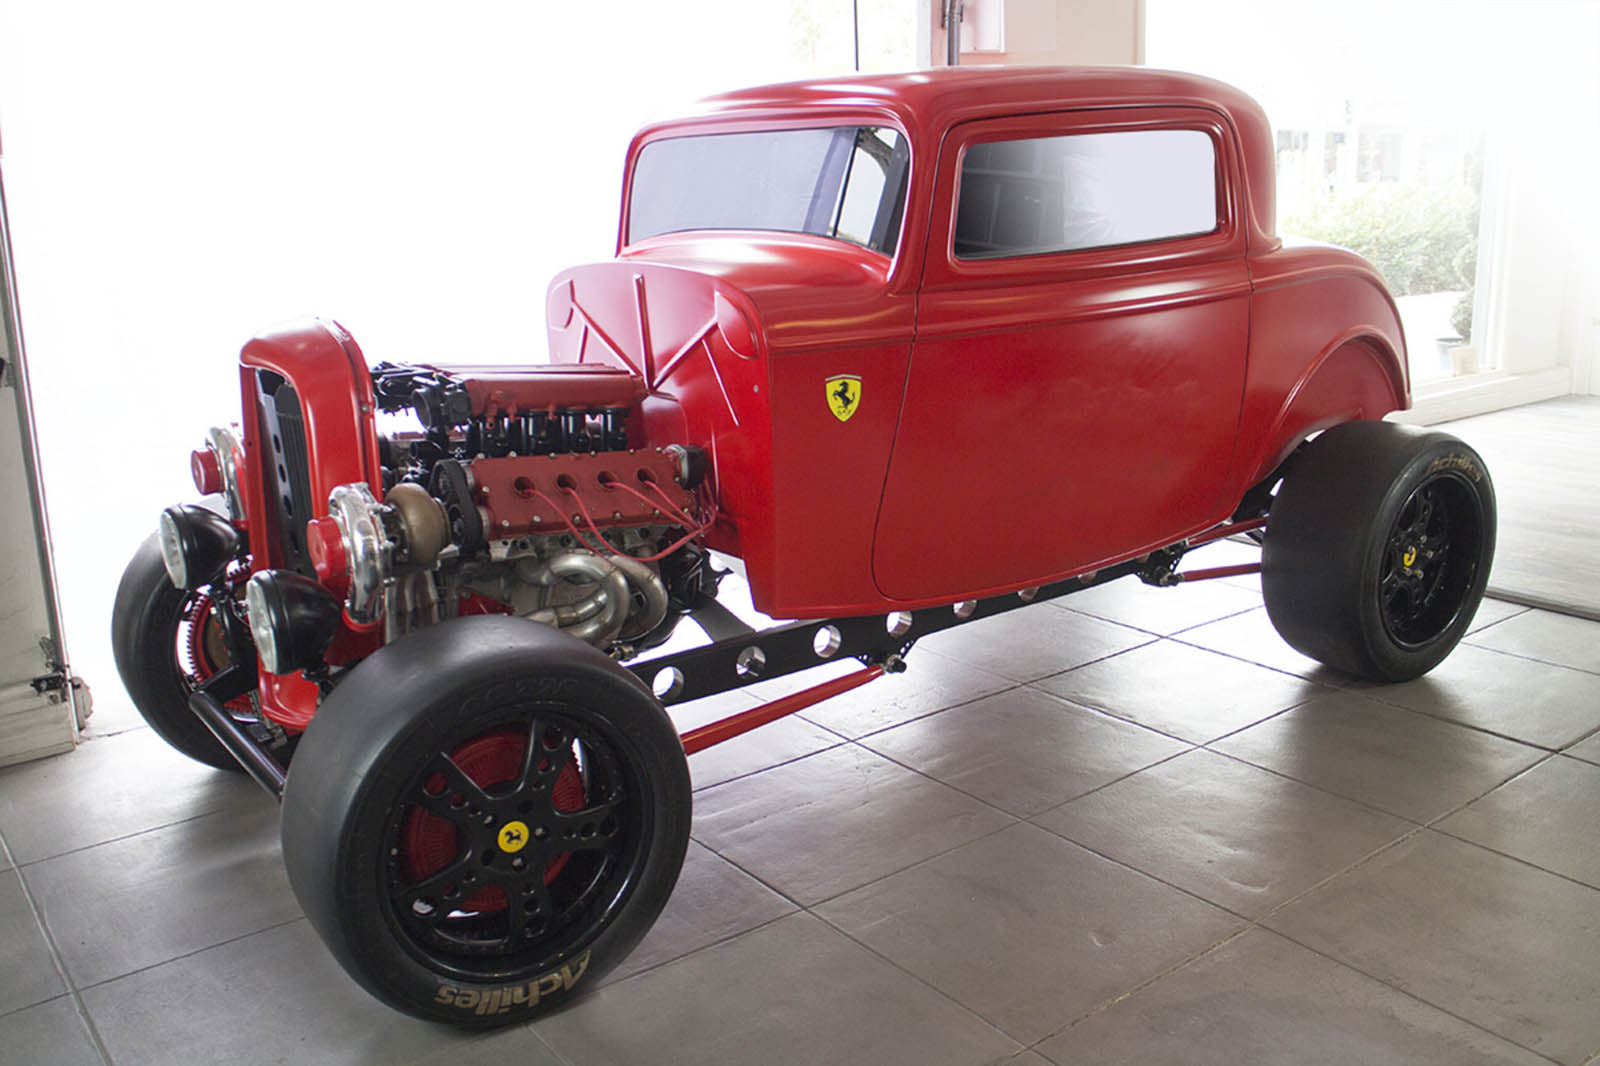 This Ferrari-Powered Ford Hot Rod Has A Split Personality   Carscoops